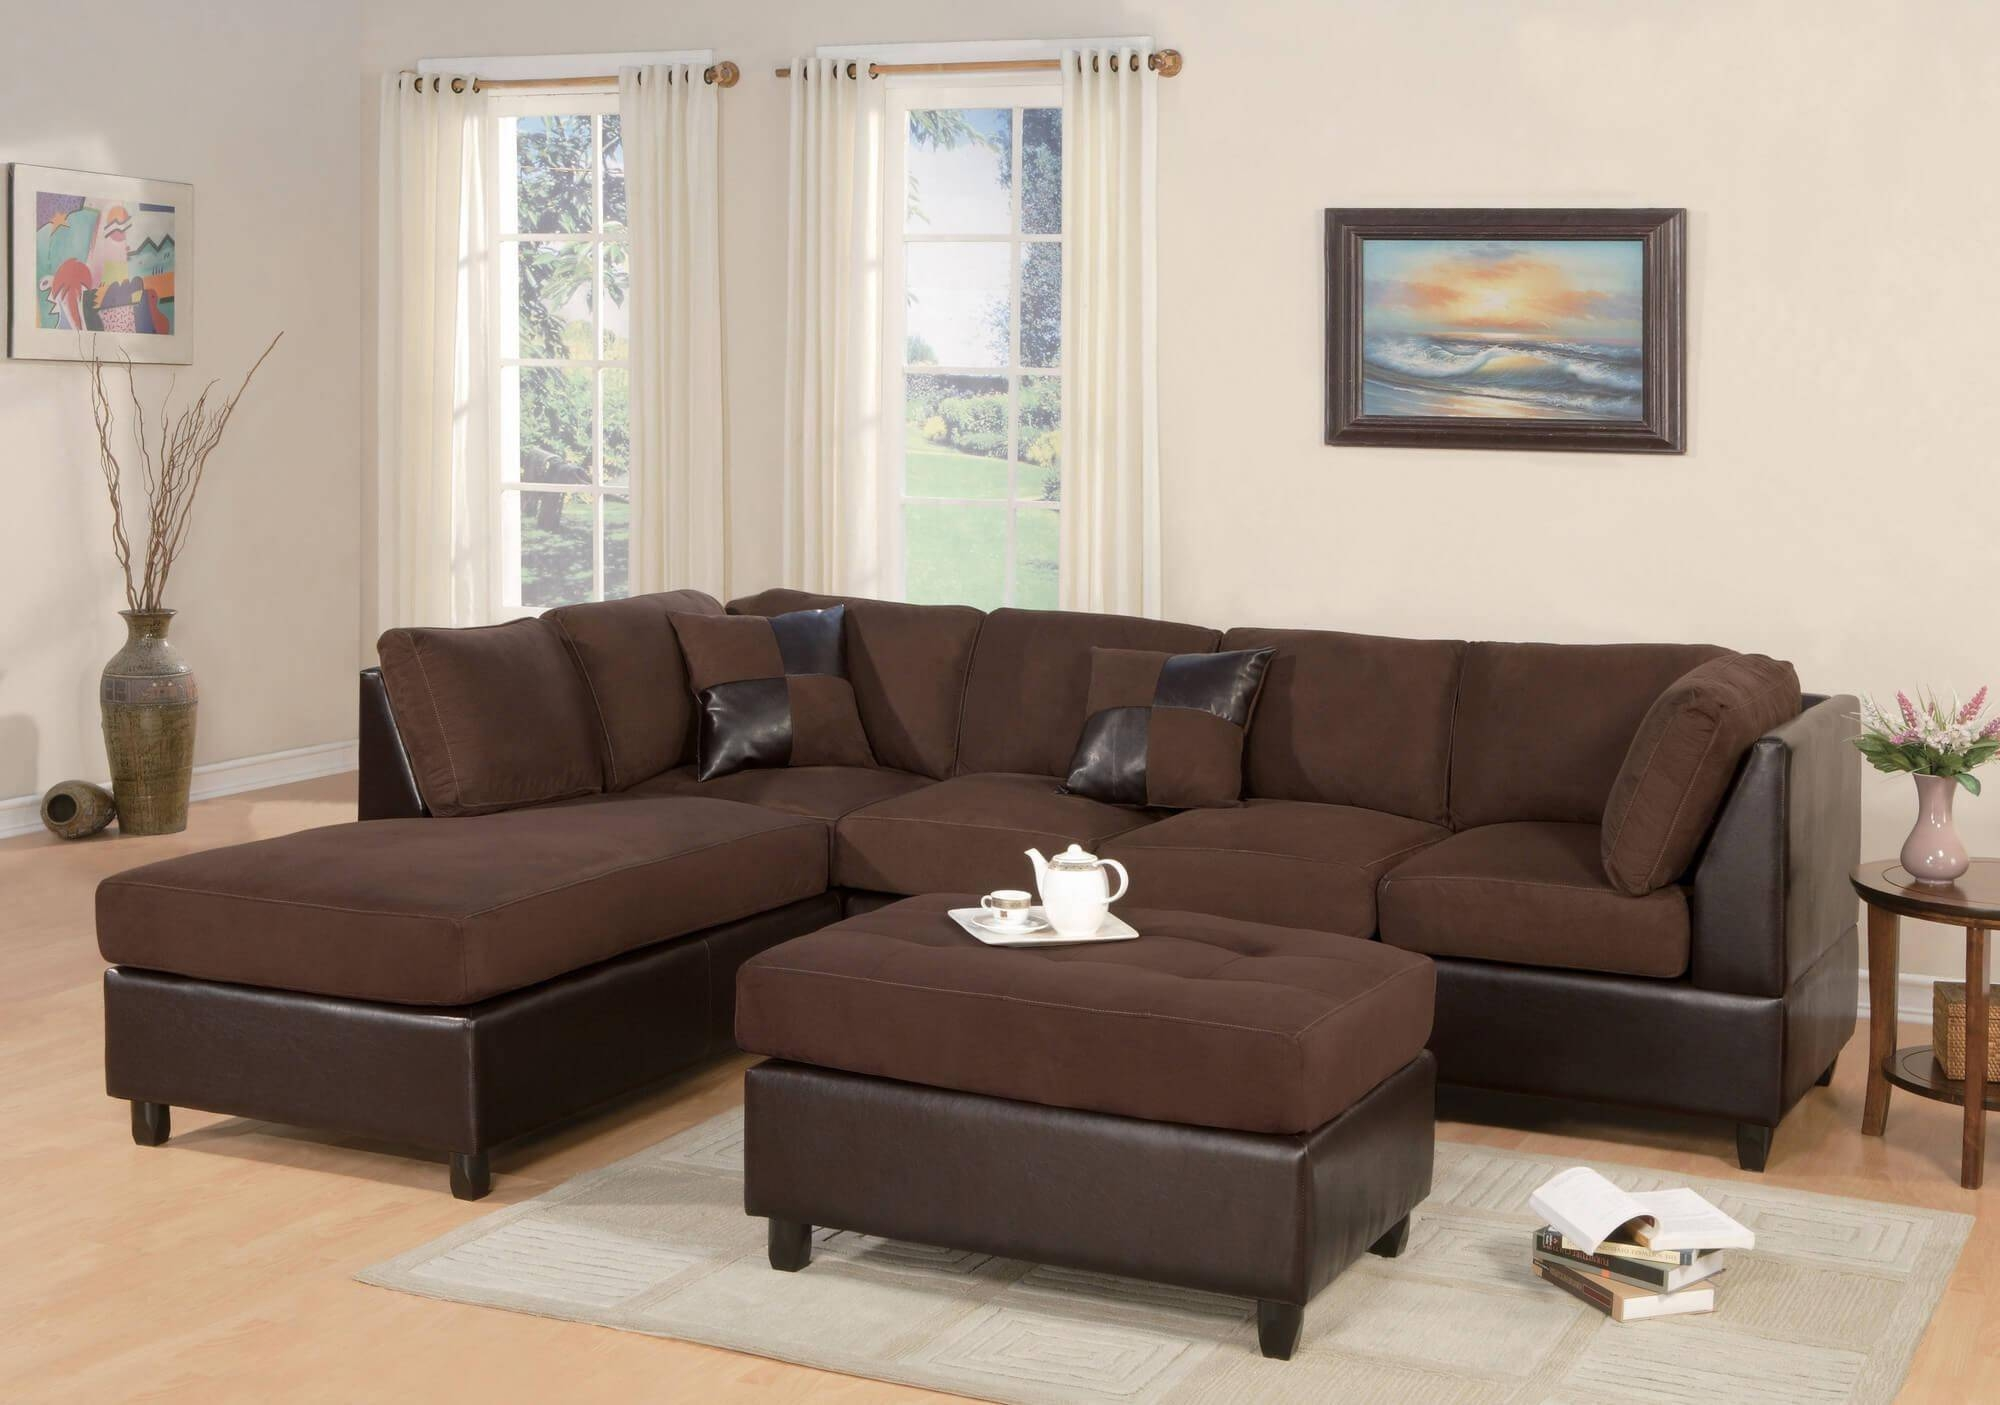 20 Top Big Lots Leather Sofas | Sofa Ideas inside Big Lots Leather Sofas (Image 1 of 15)